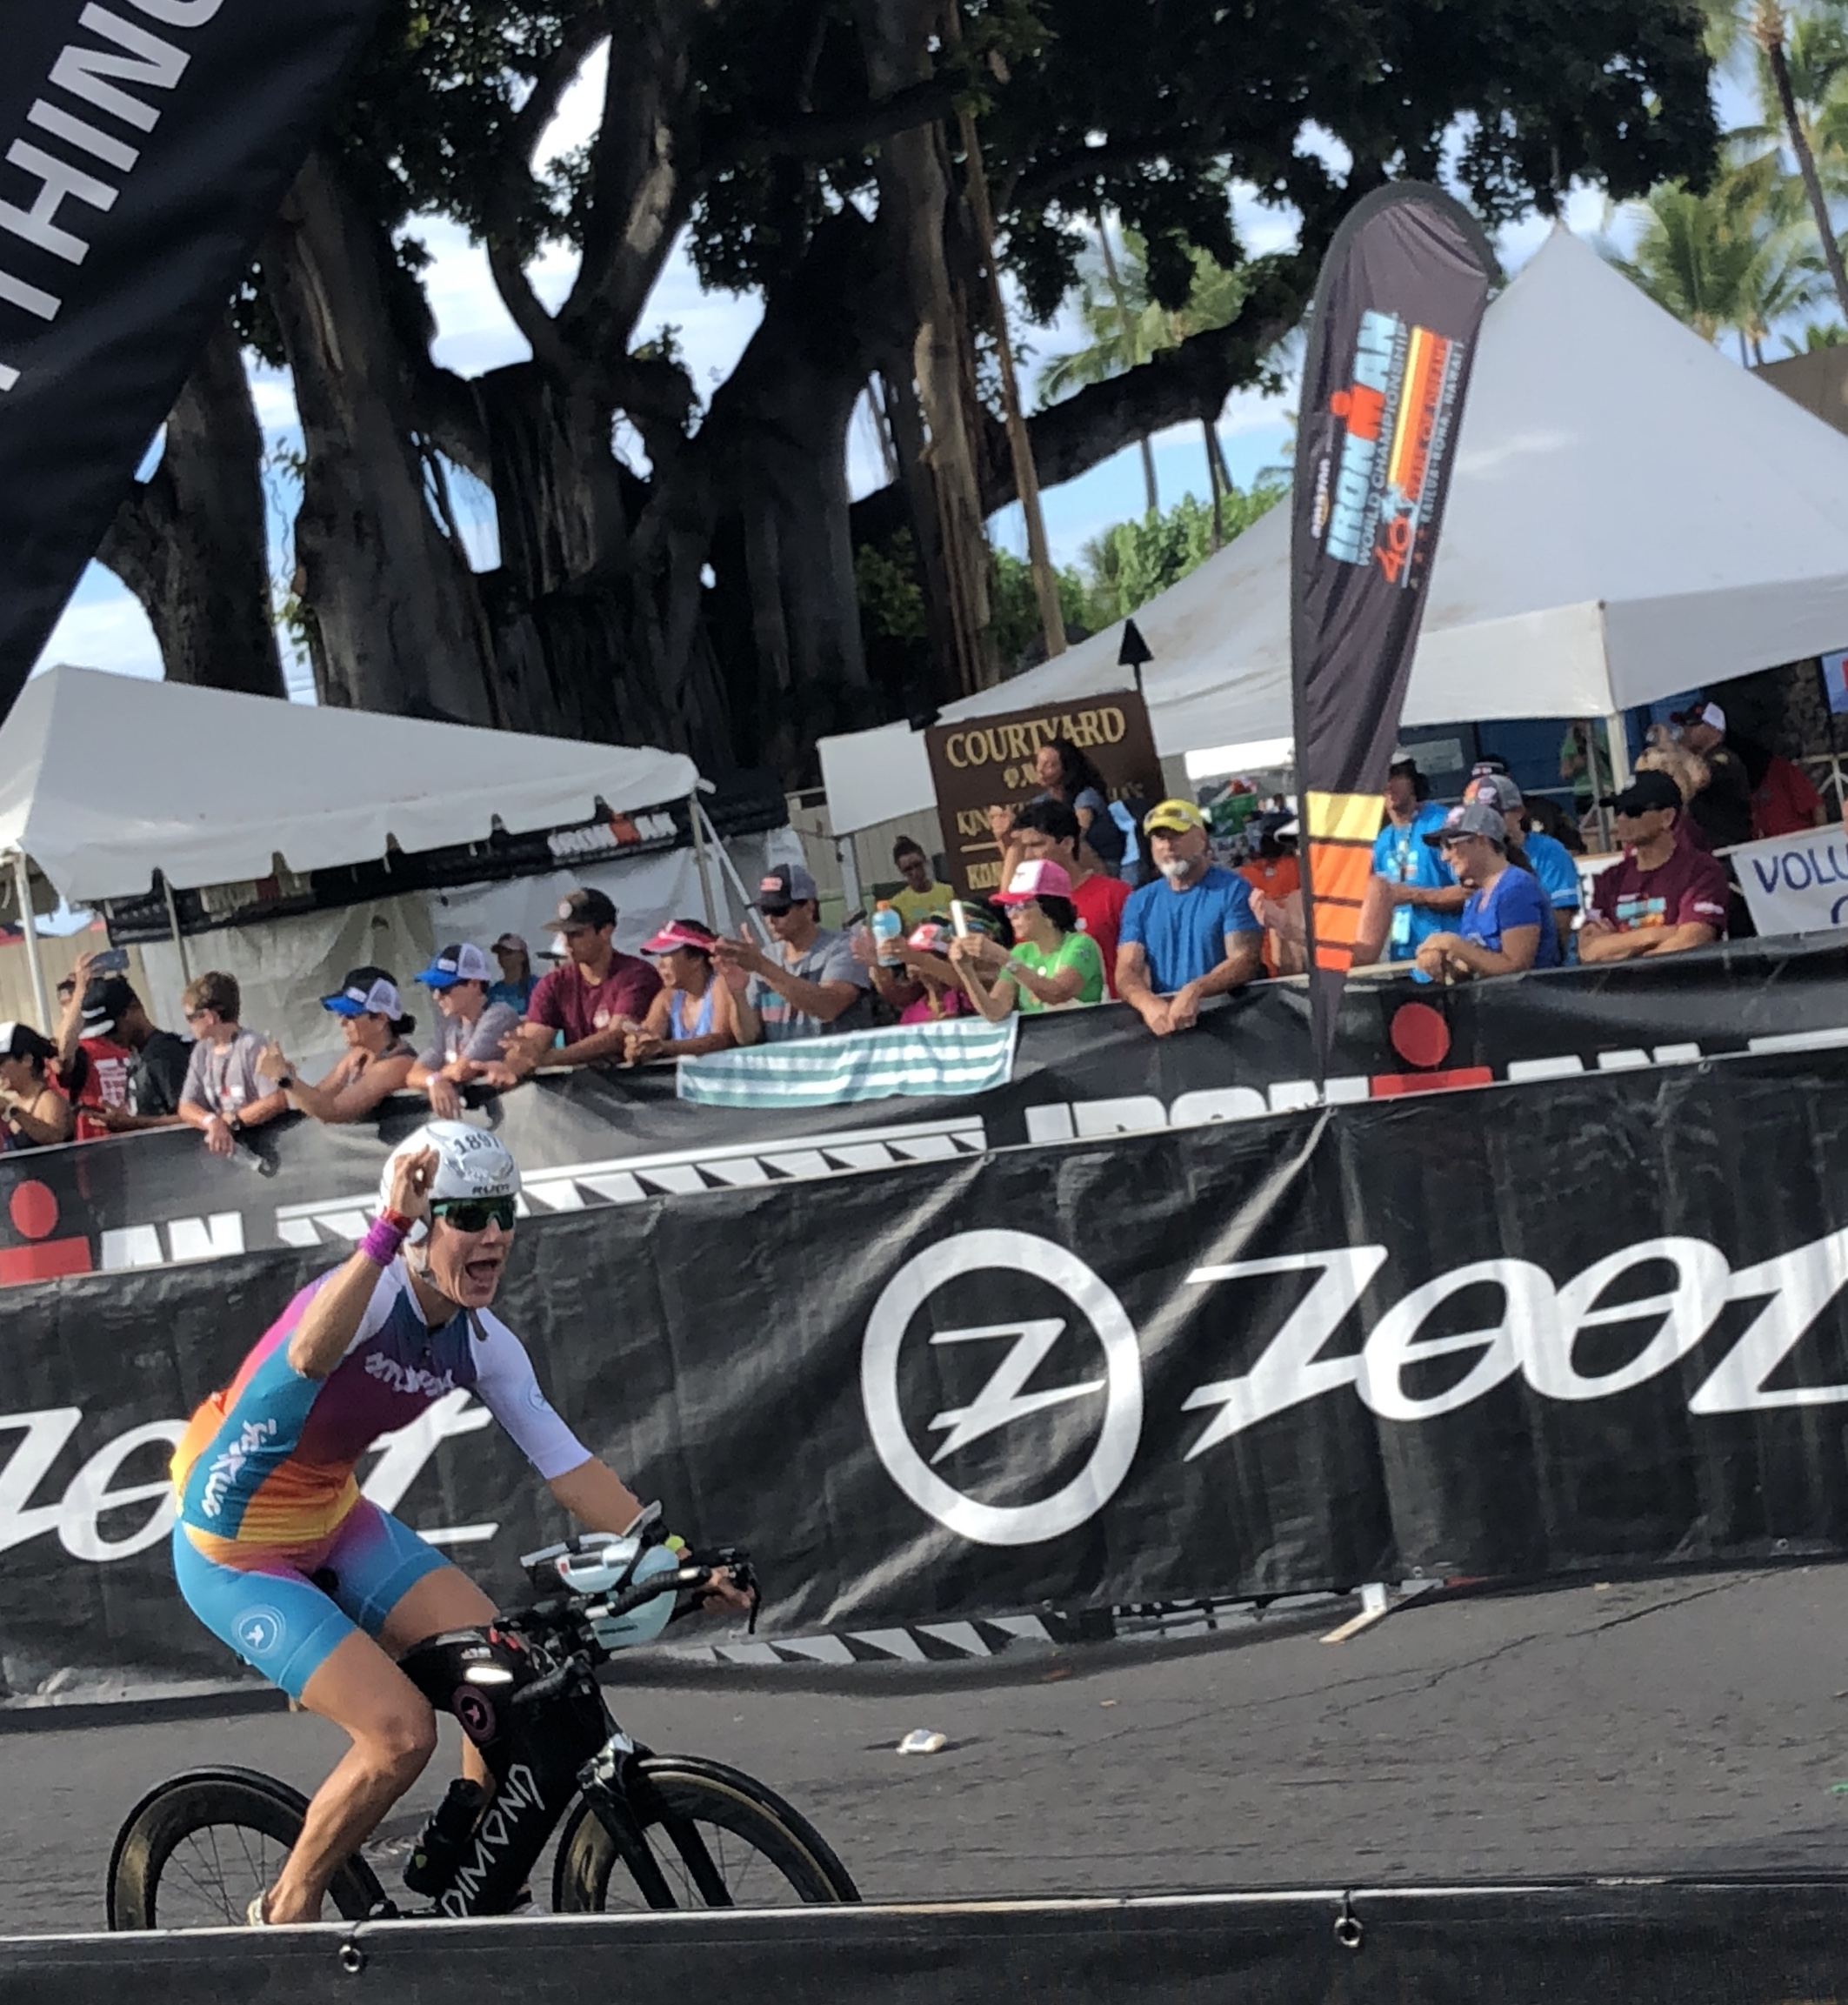 Pedaling out of transition.